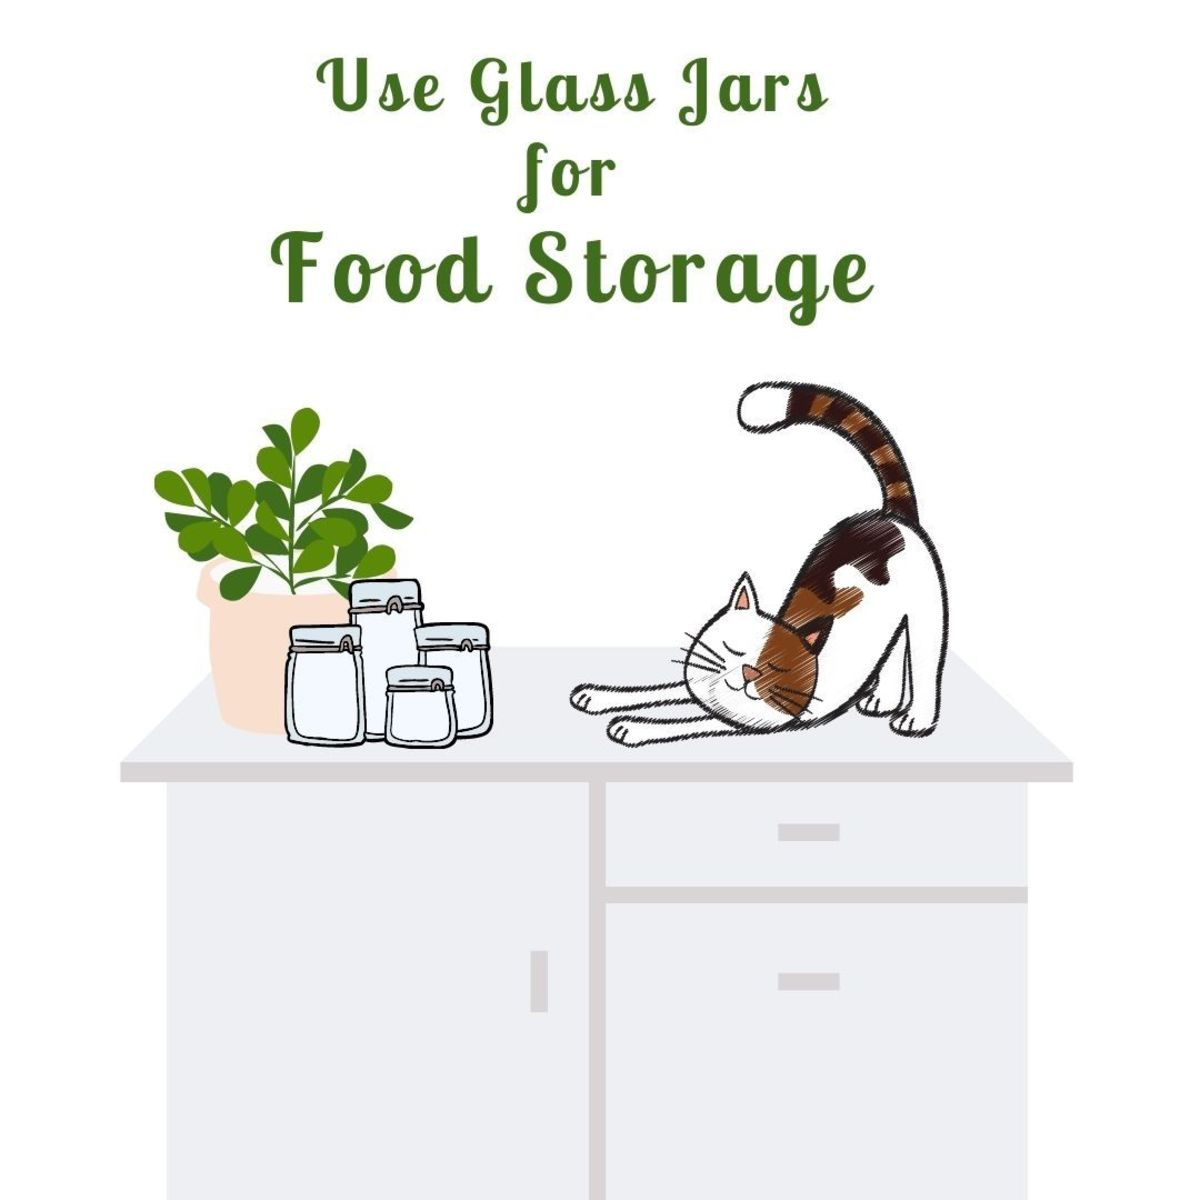 Glass jars are great for food storage, flowers, and herbs!